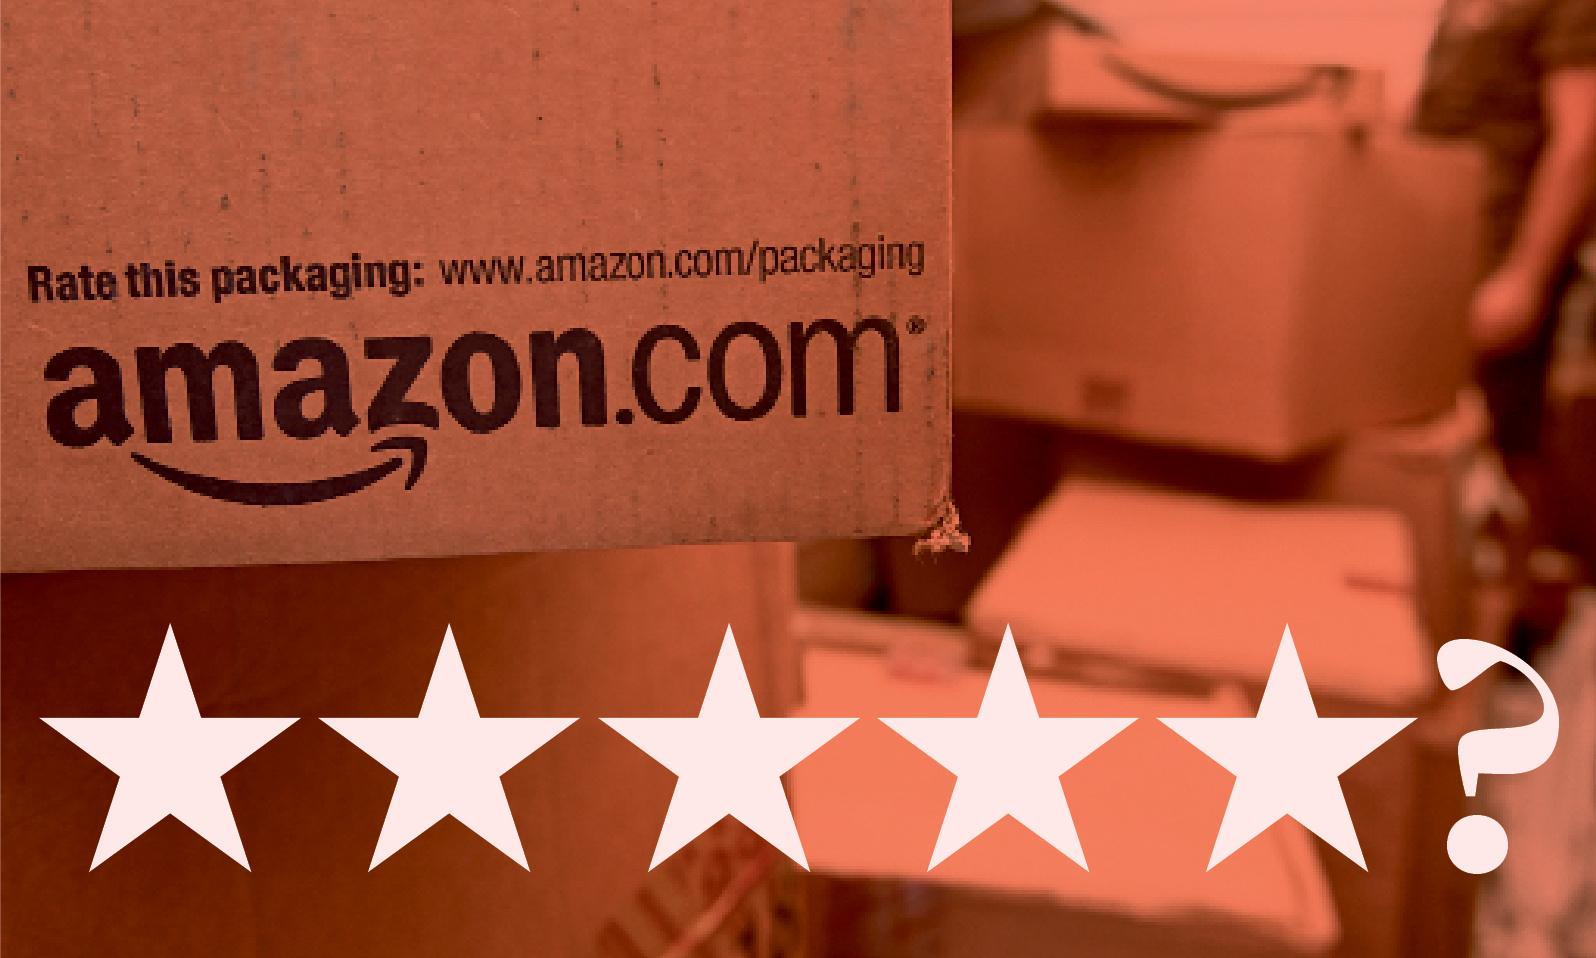 Five stars or fake? How to beat fraudulent online reviews